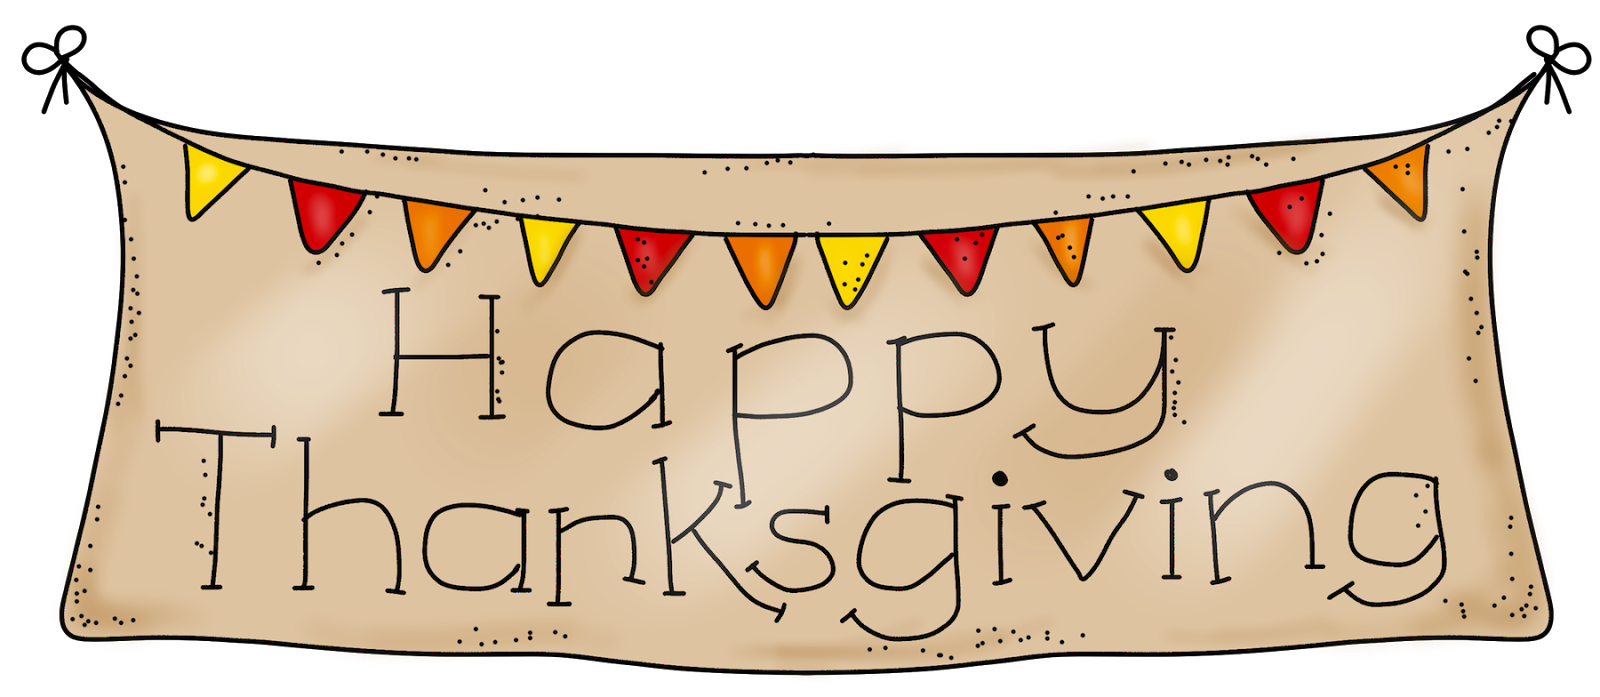 Thanksgiving clipart happy thanksgiving Thanksgiving 1 art 2 thanksgiving